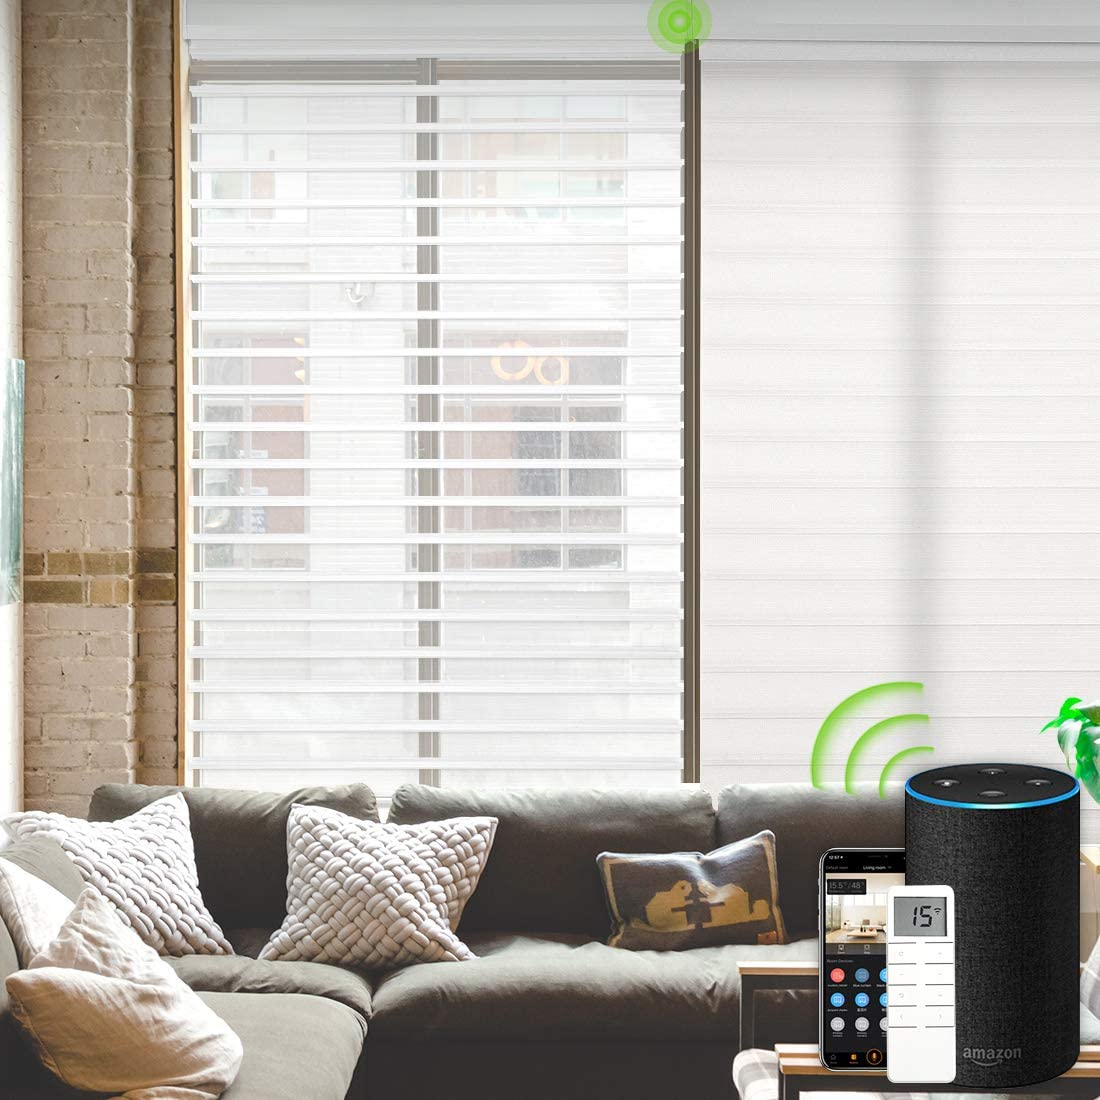 Yoolax Motorized Window Blinds Shangri-la Sheer Shades Light Filtering Remote Control Wireless Rechargeable Capable with Alexa Google Smart Home and Siri Customized White